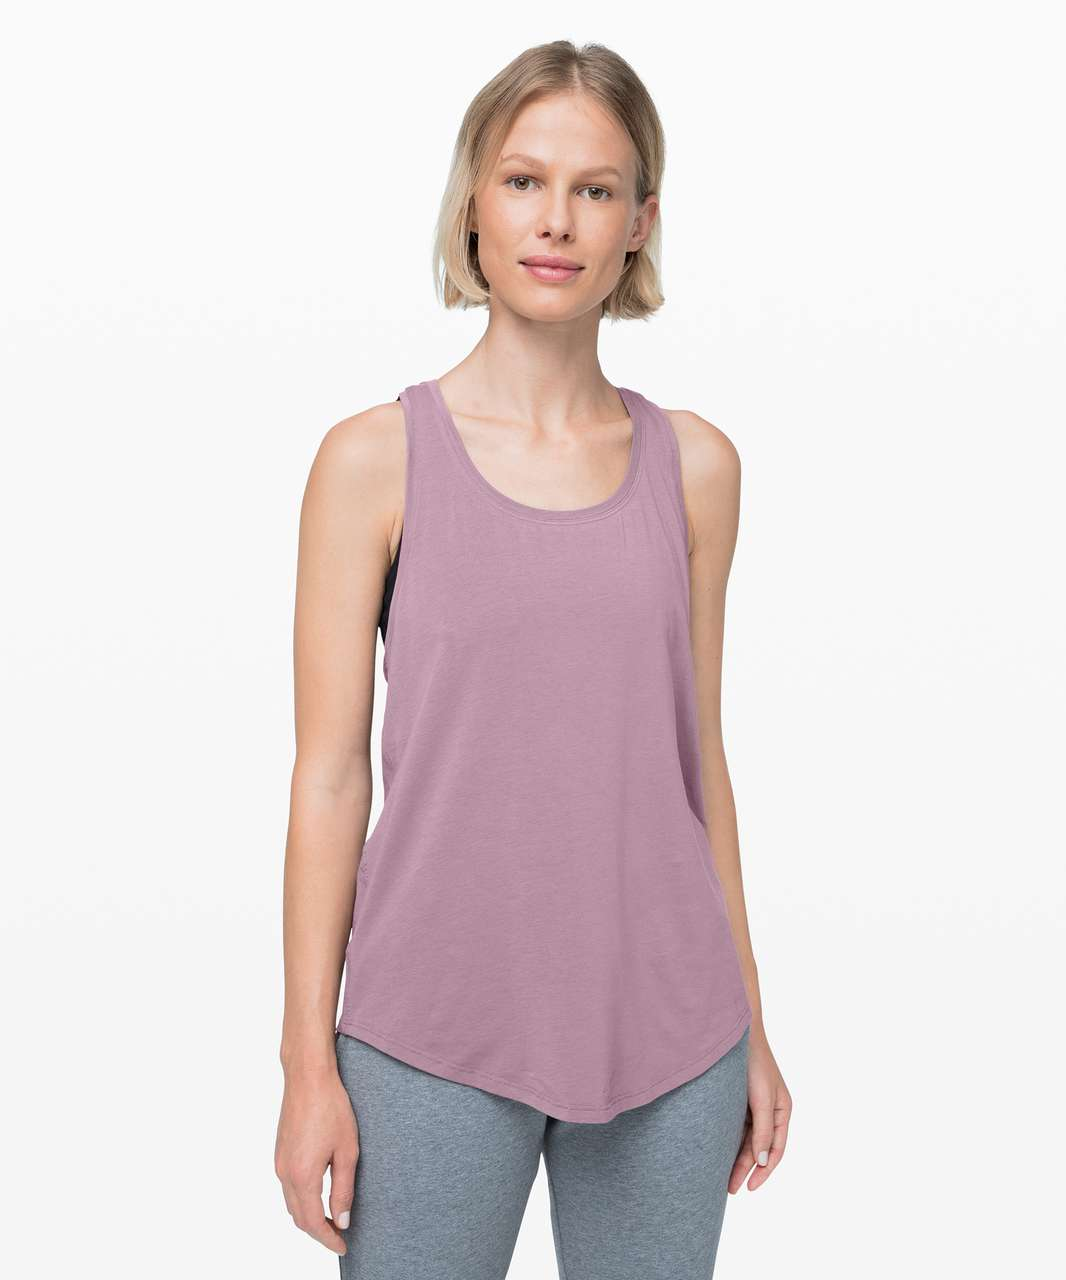 Lululemon Love Tank *Pleated - Frosted Mulberry